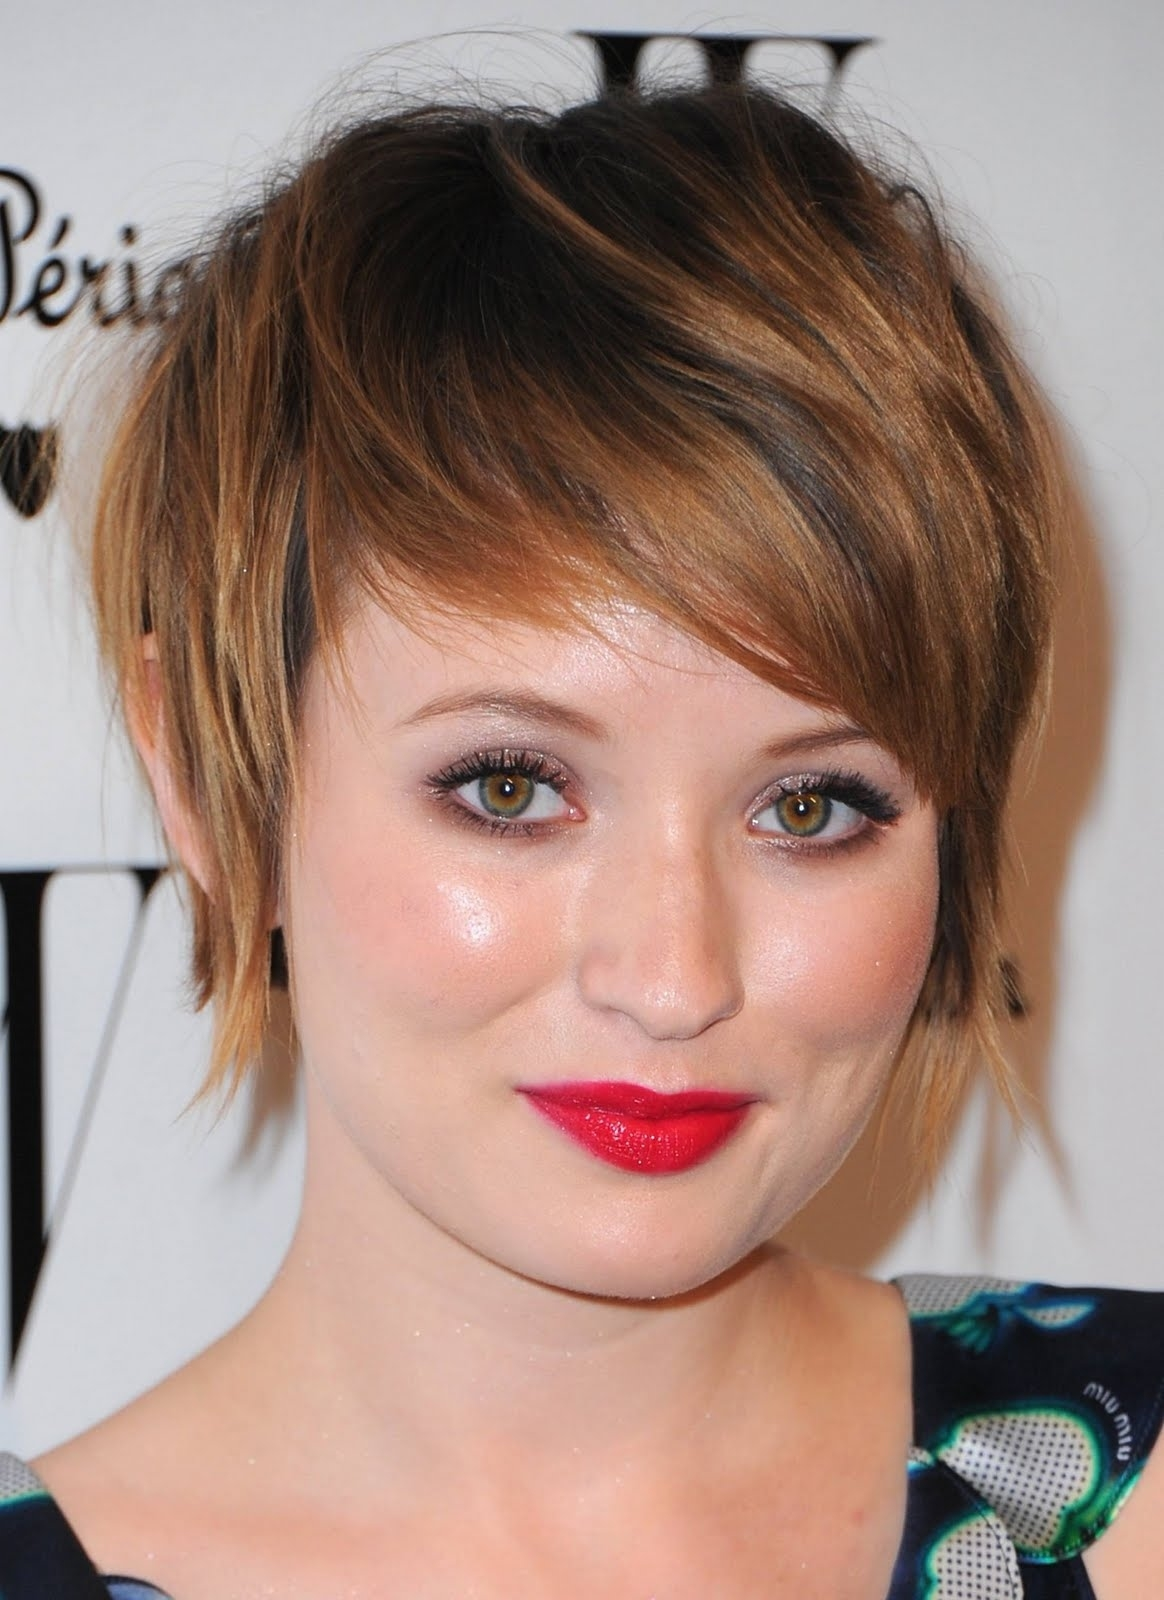 25 Hairstyles And Haircuts For Round Faces In 2016 - The Xerxes with Haircut For Round Face Long Neck